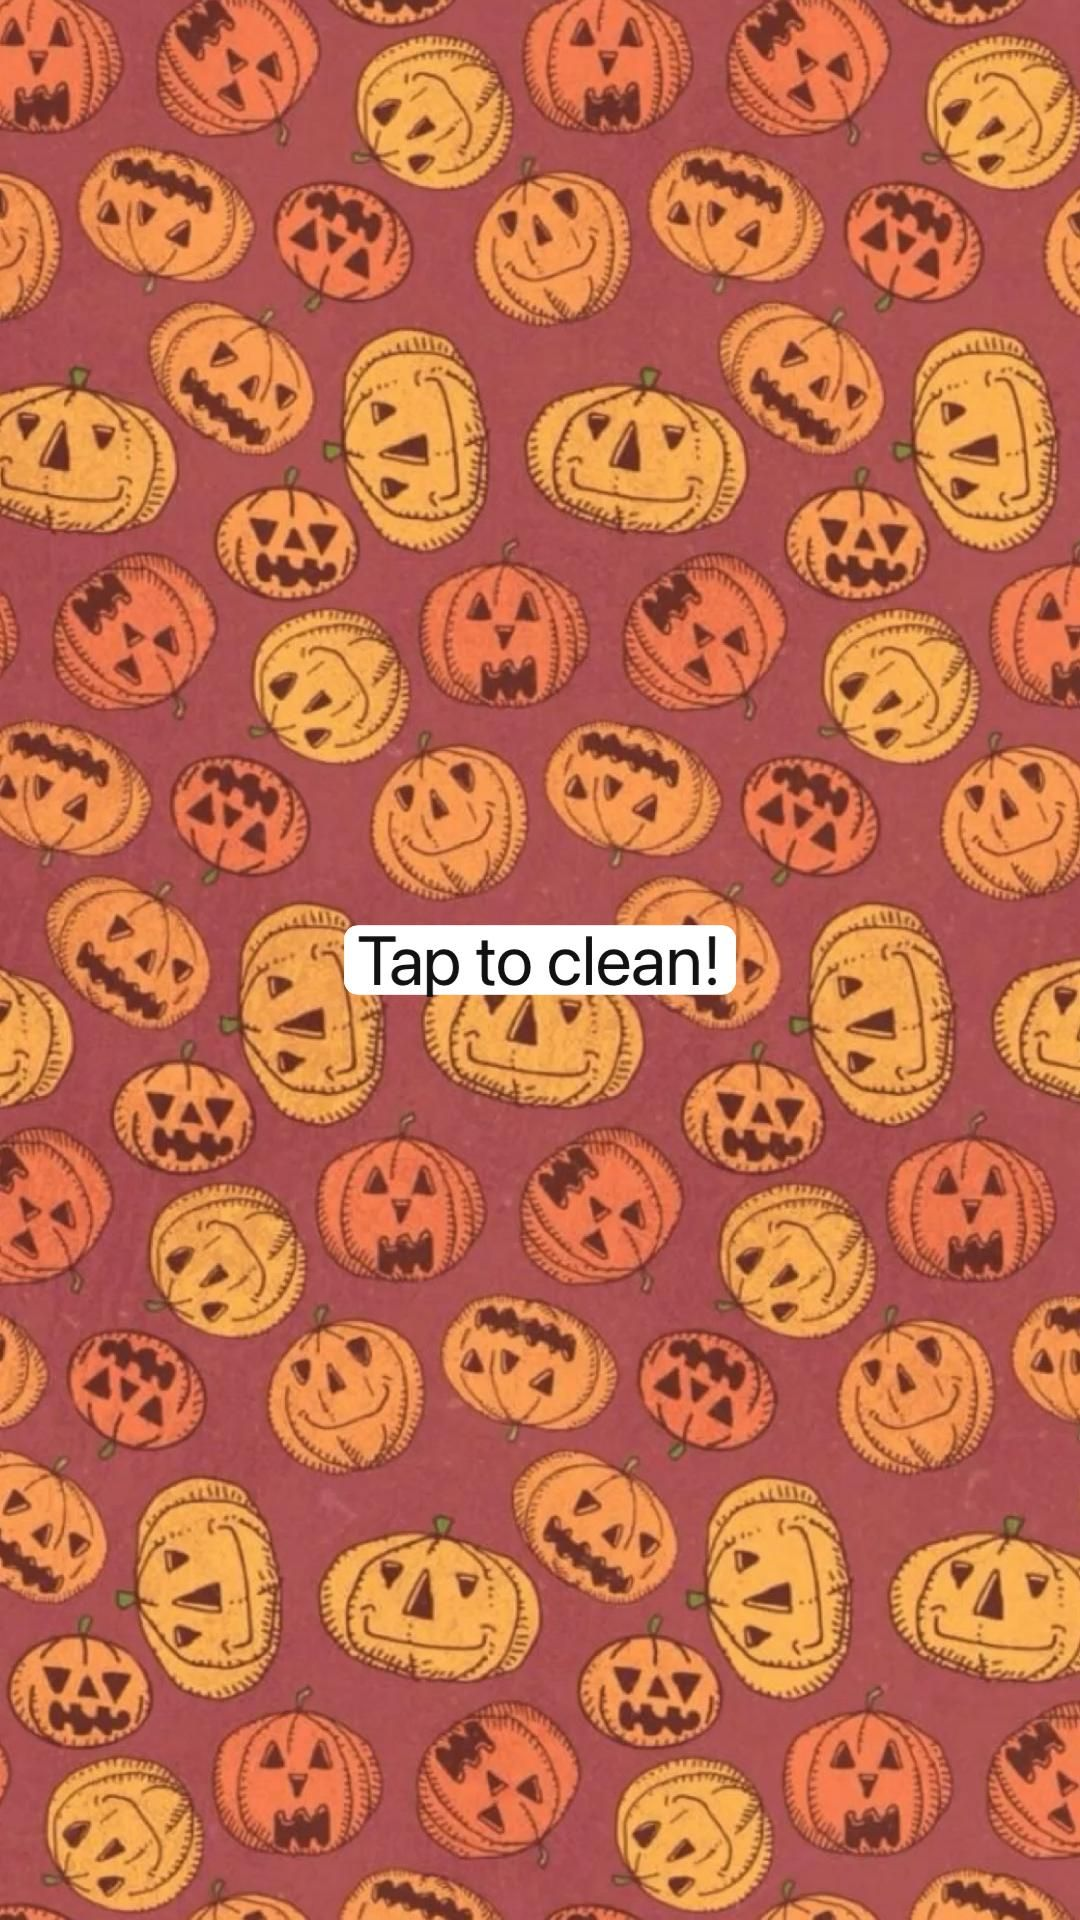 Tap to clean!